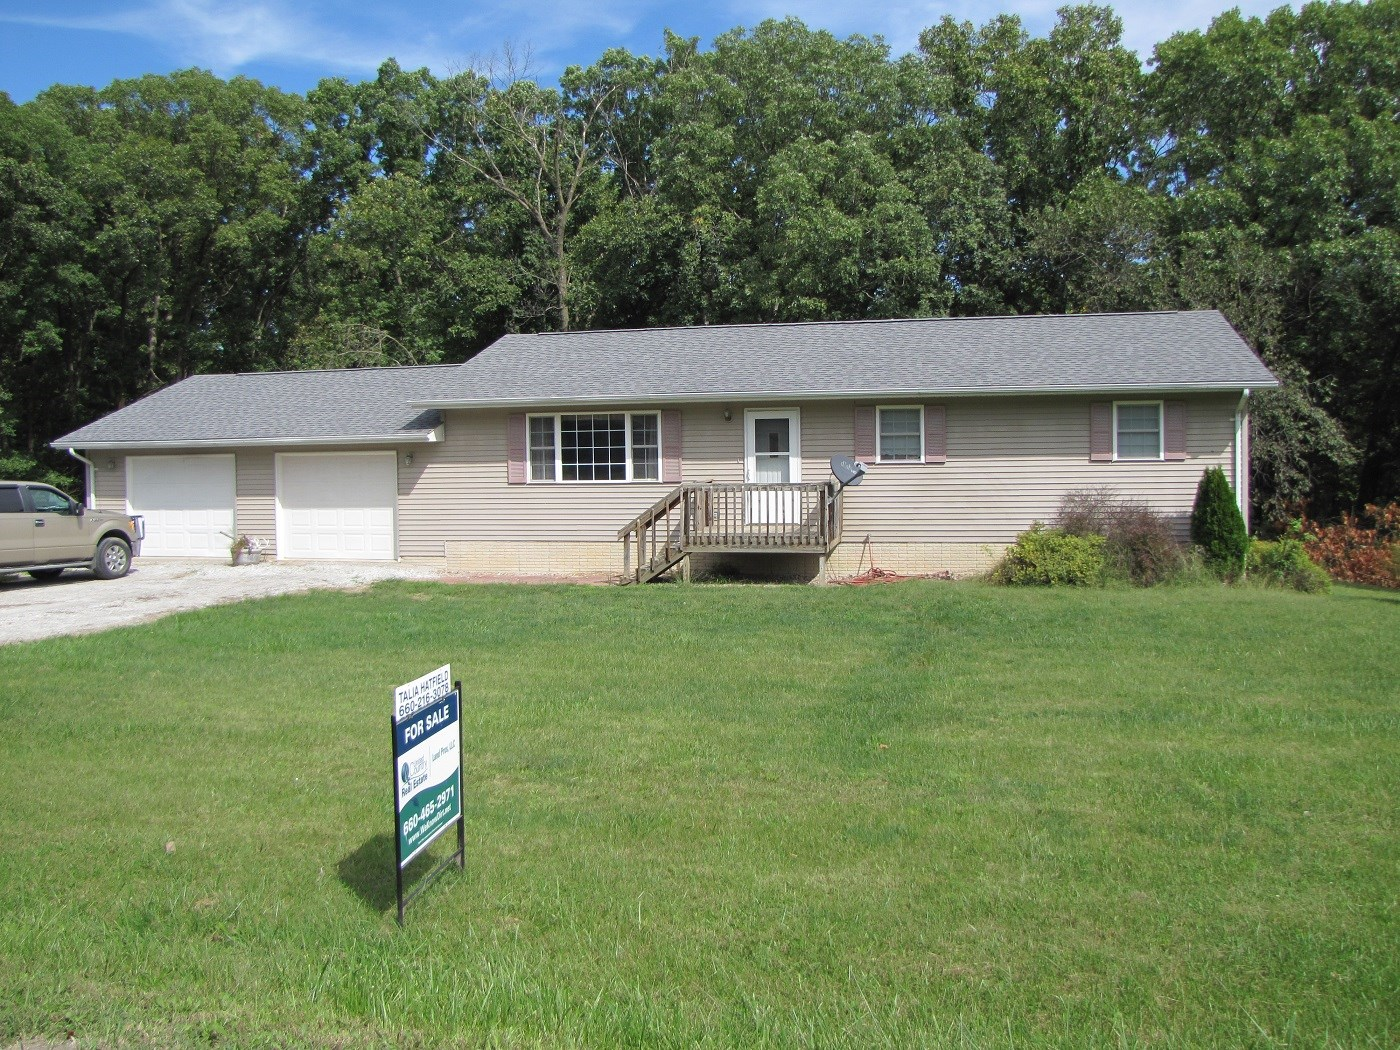 NORTHEAST MO COUNTRY HOME, SMALL ACRES, POND, TIMBER